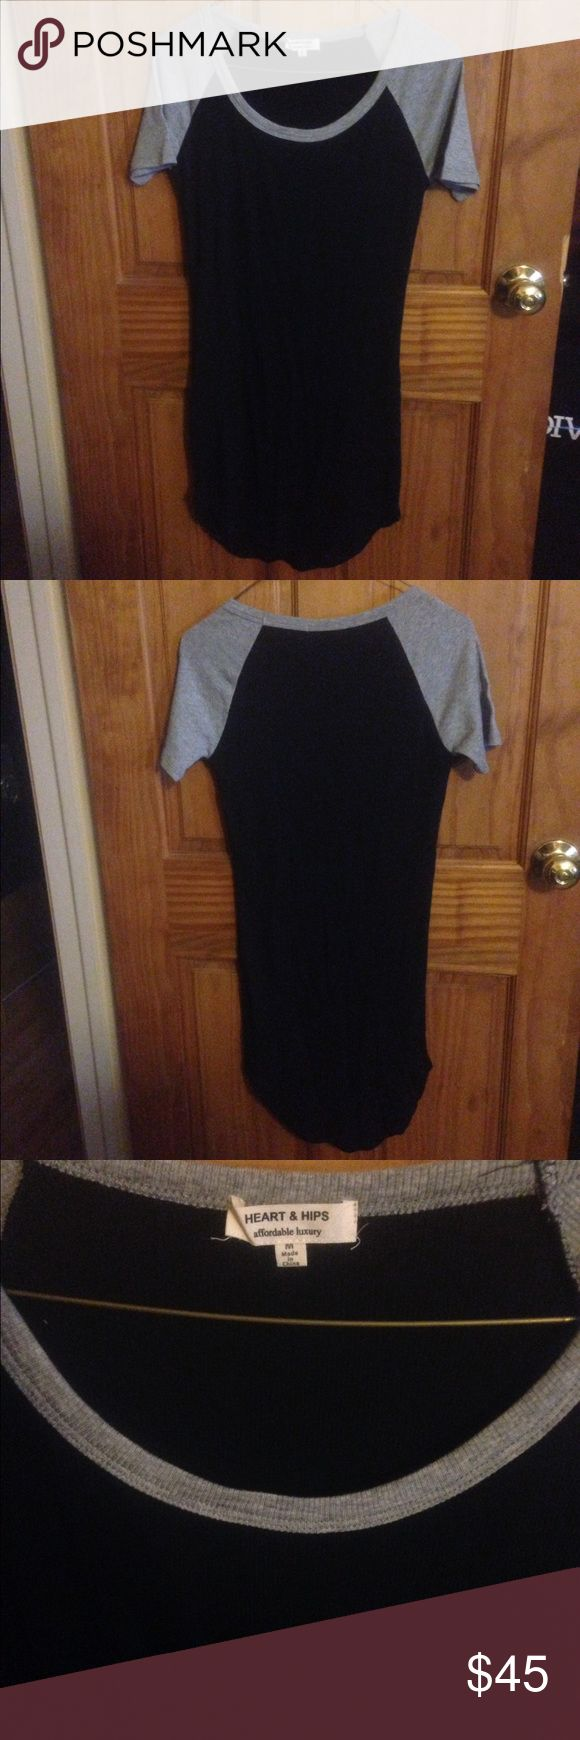 New listing! NWOT black and grey bodycon dress New listing! NWOT black and grey bodycon dress size Medium Boutique Dresses Mini